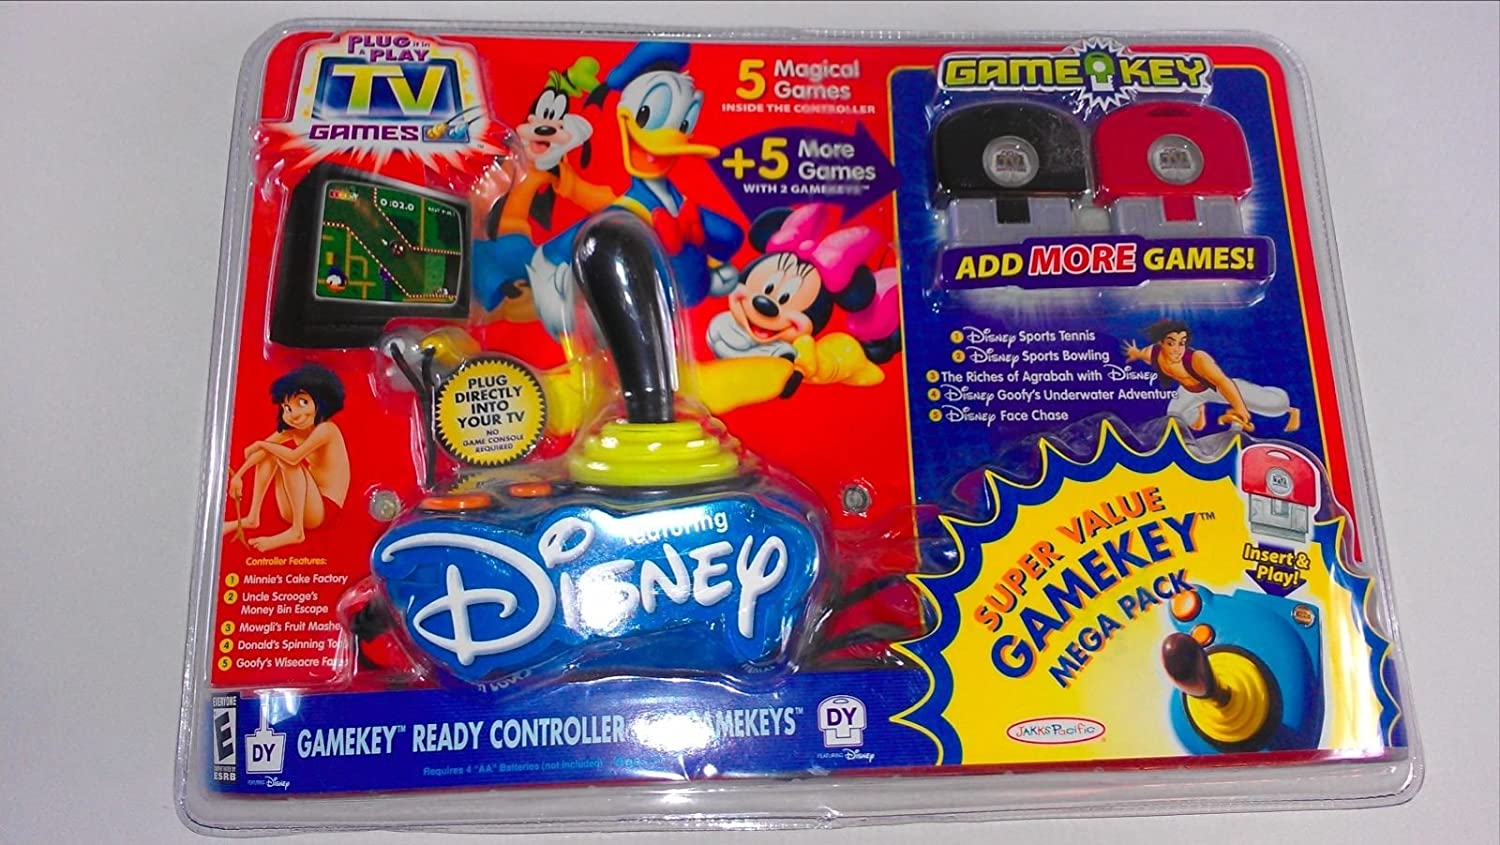 Disney Plug it in & Play TV Super Value Mega Pack with 2 extra Game Keys by Disney